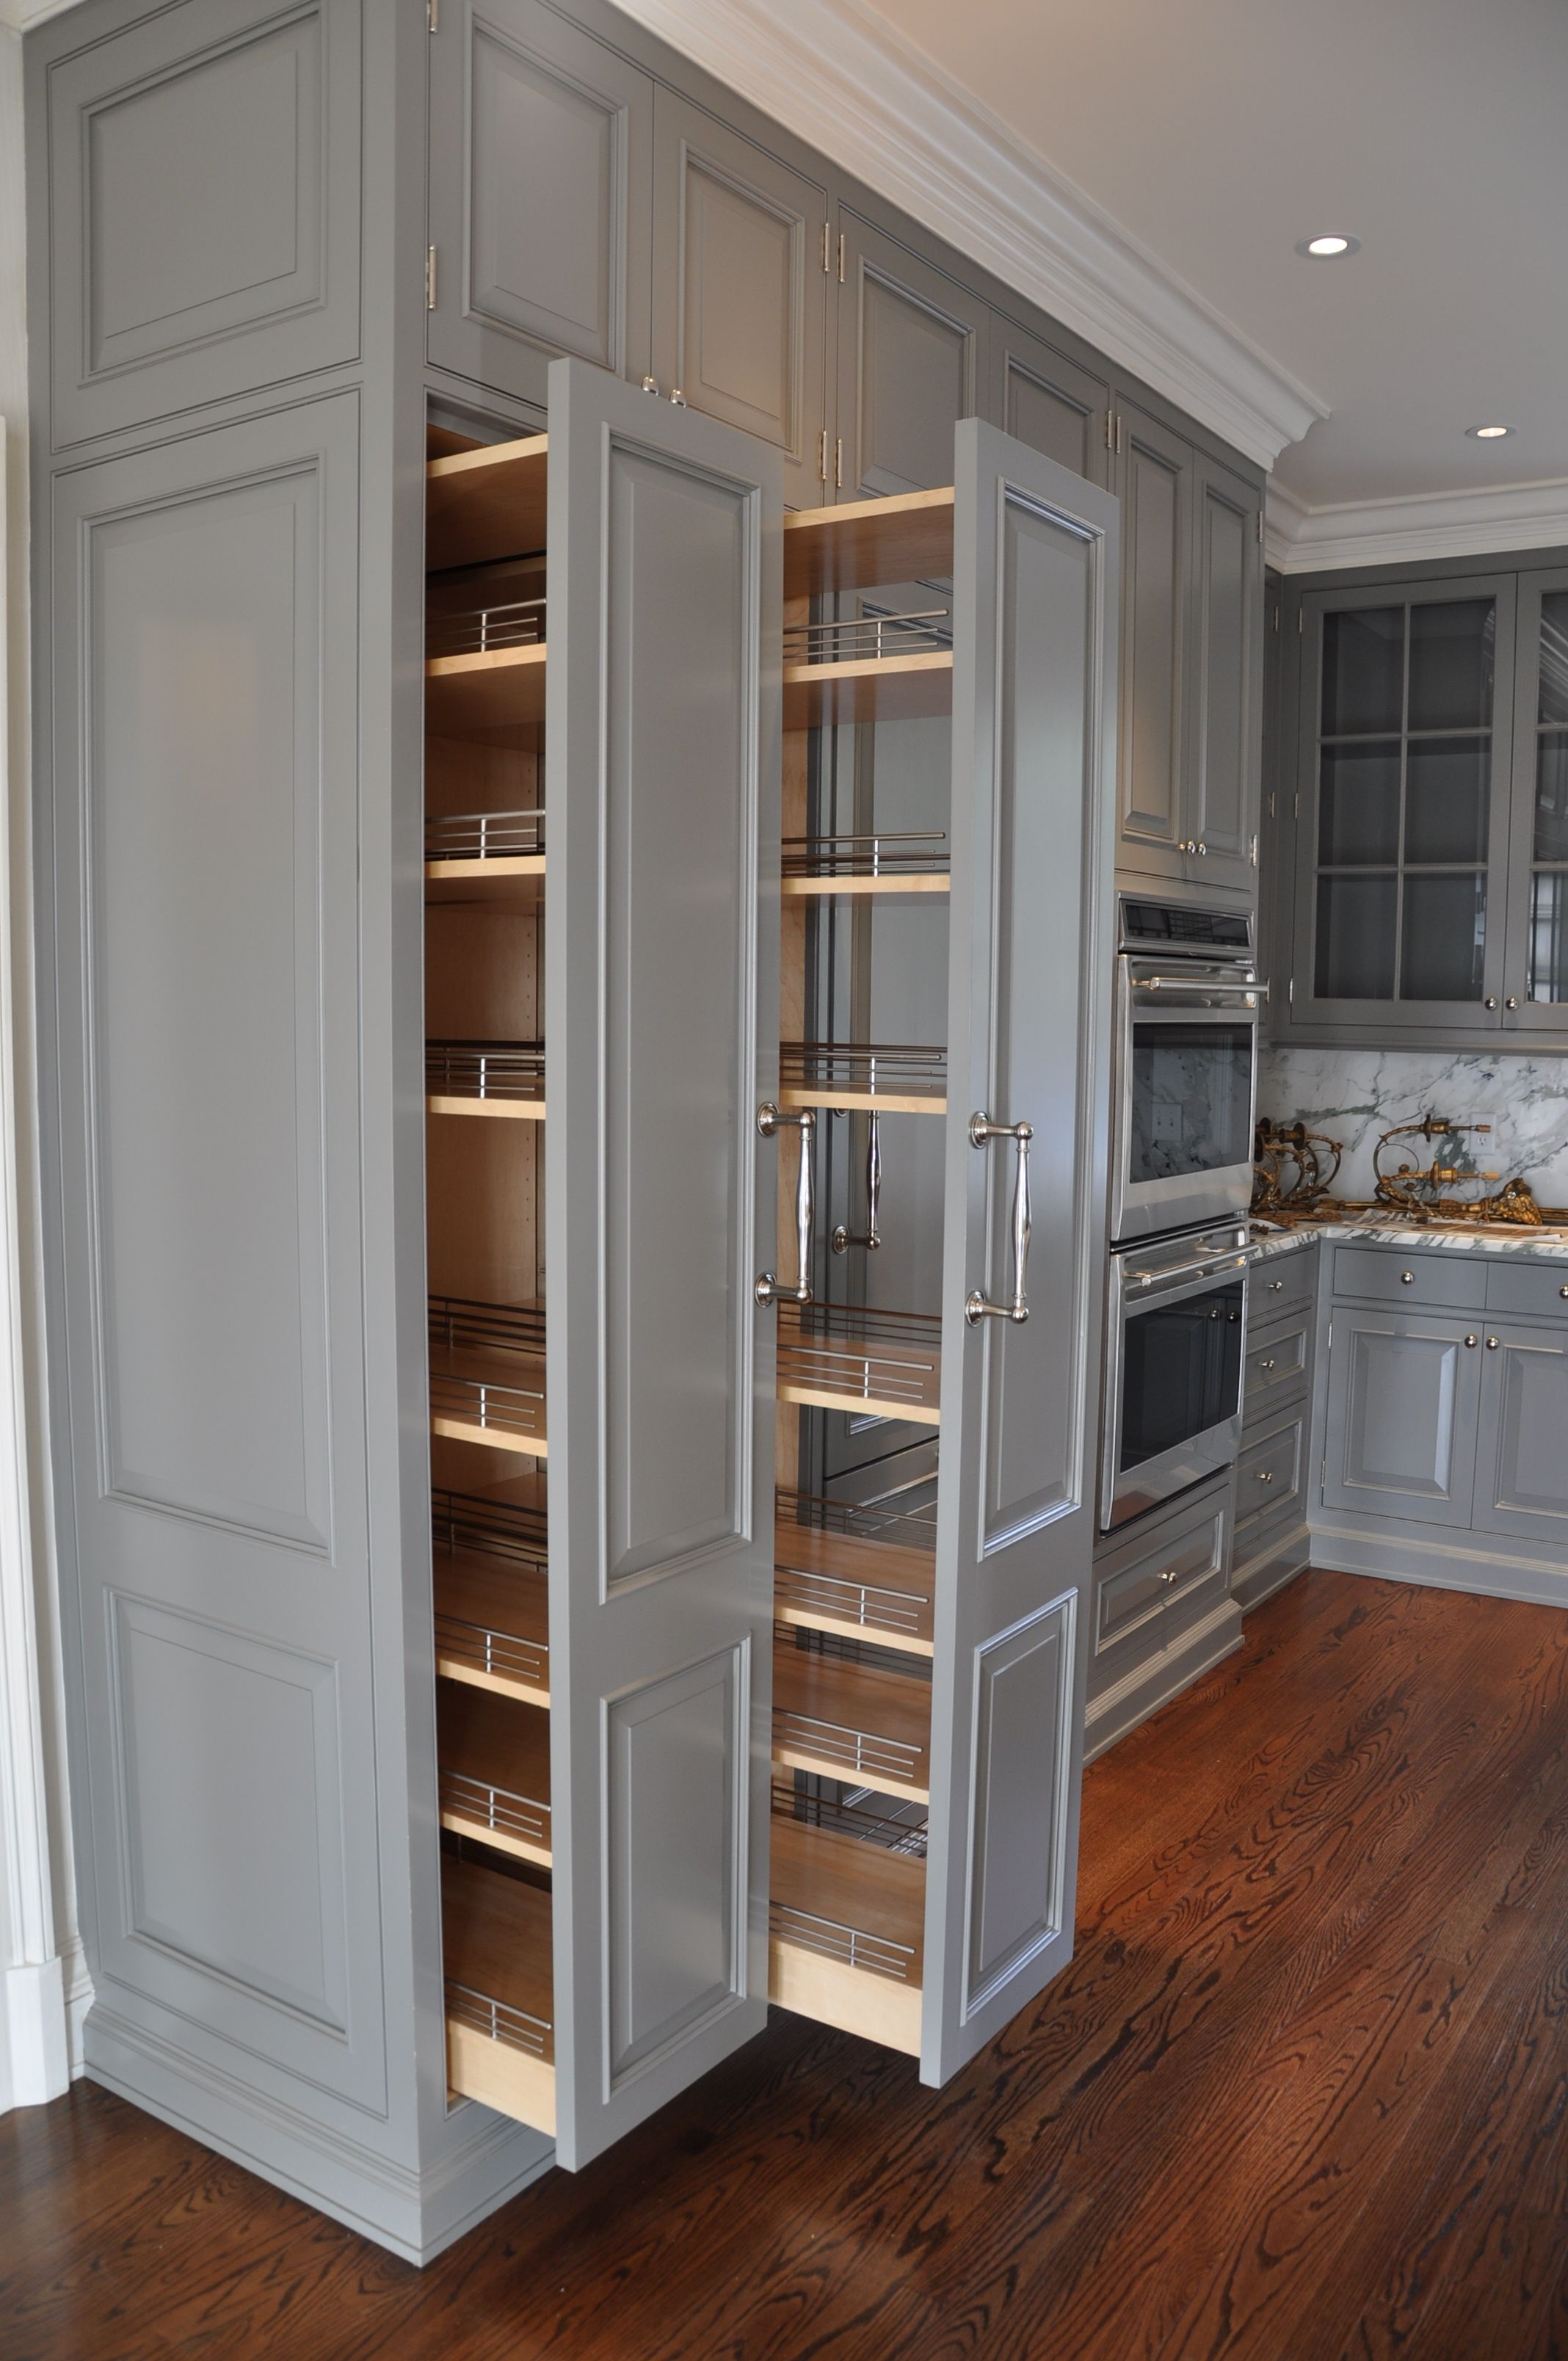 a space saving pantry concept kitchen pullout kitchen on creative space saving cabinets and storage ideas id=86104